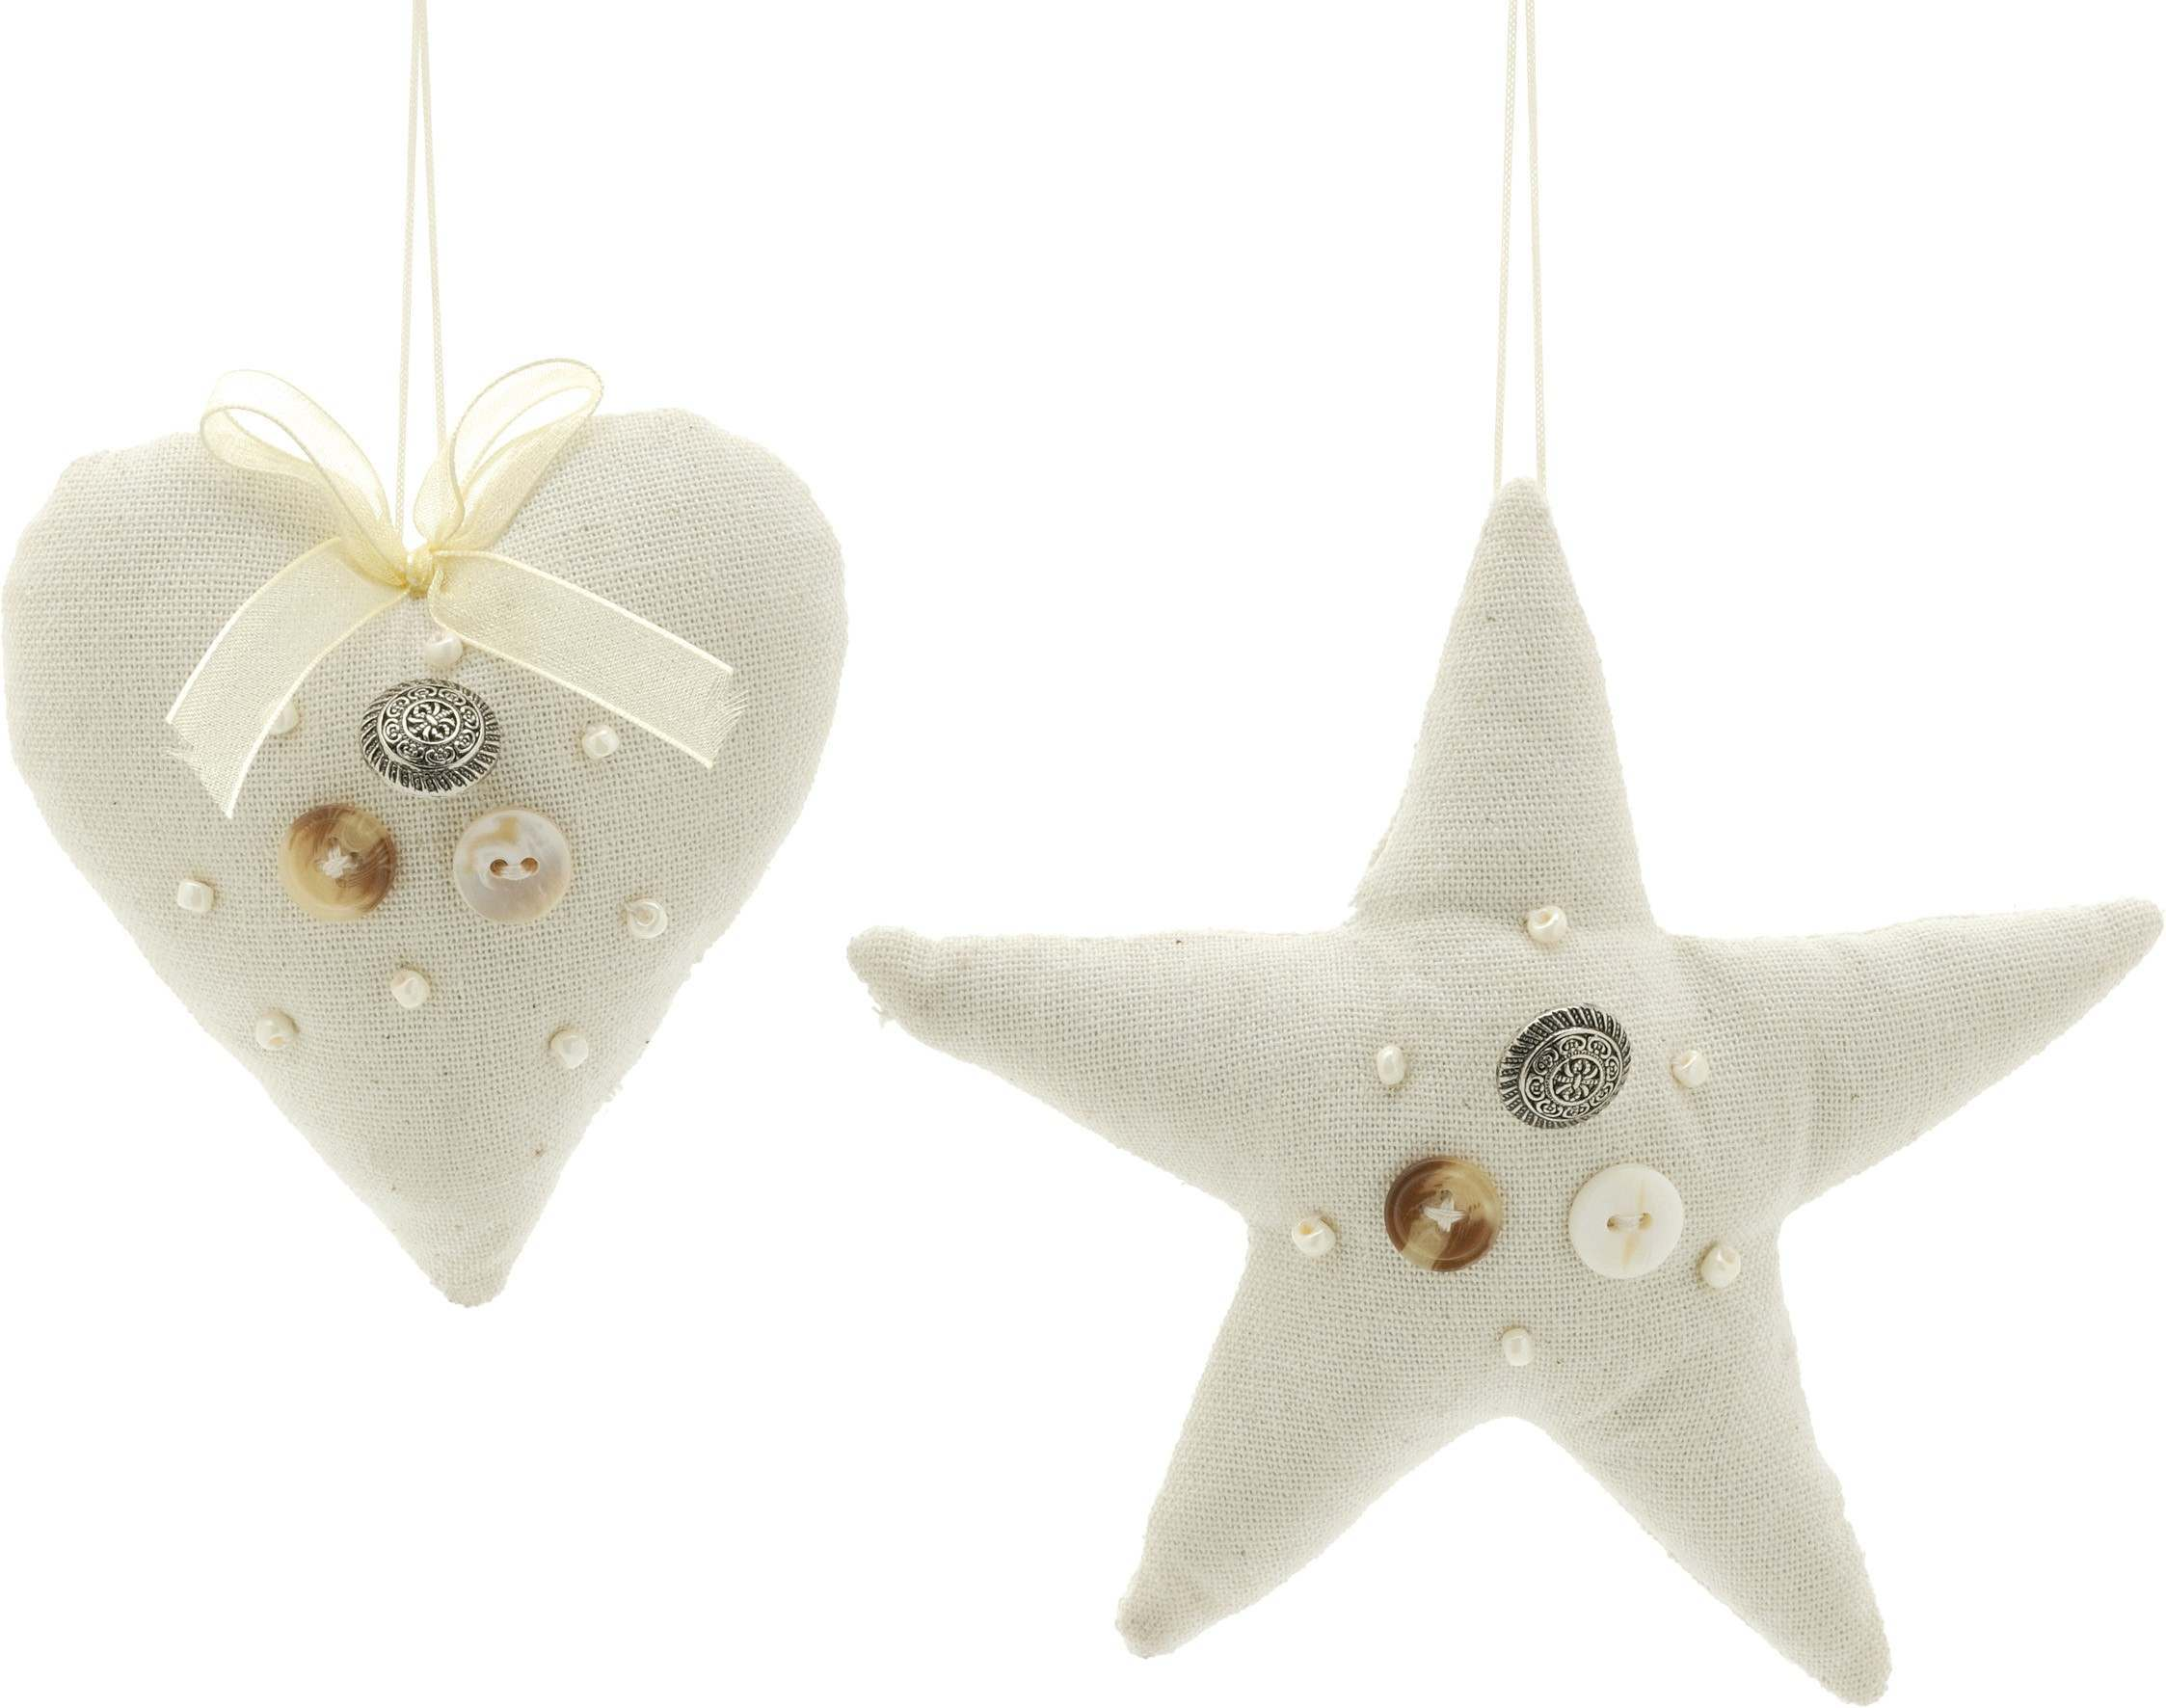 14cm Star Heart Fabric Decorations with Pearl Button Detail 2 Asst`d Designs